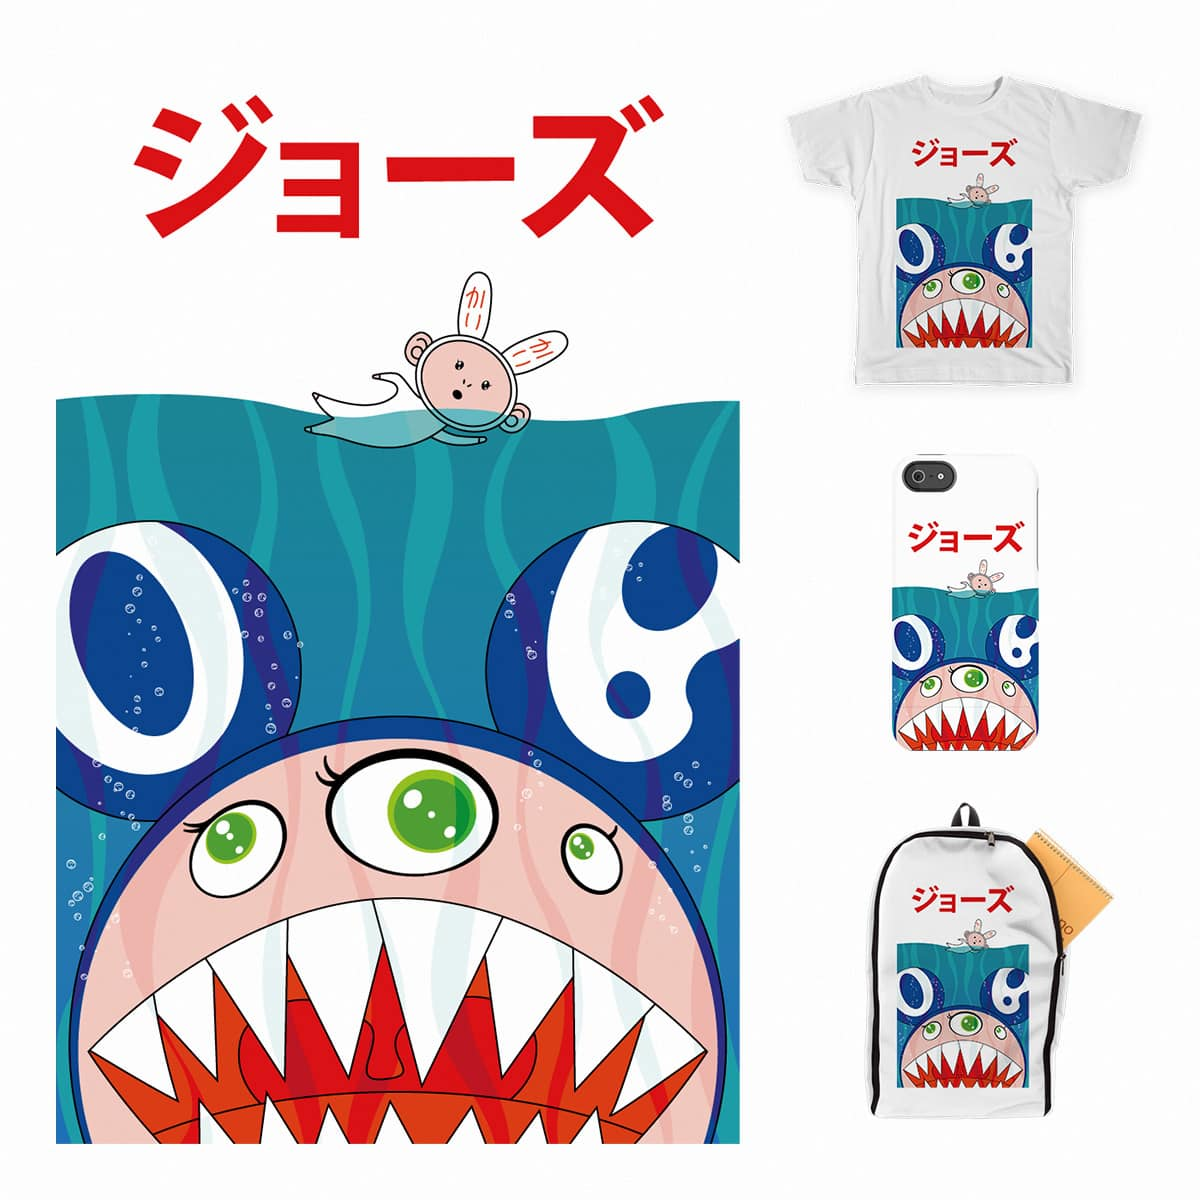 Murakami Jaws by Dan Harman on Threadless